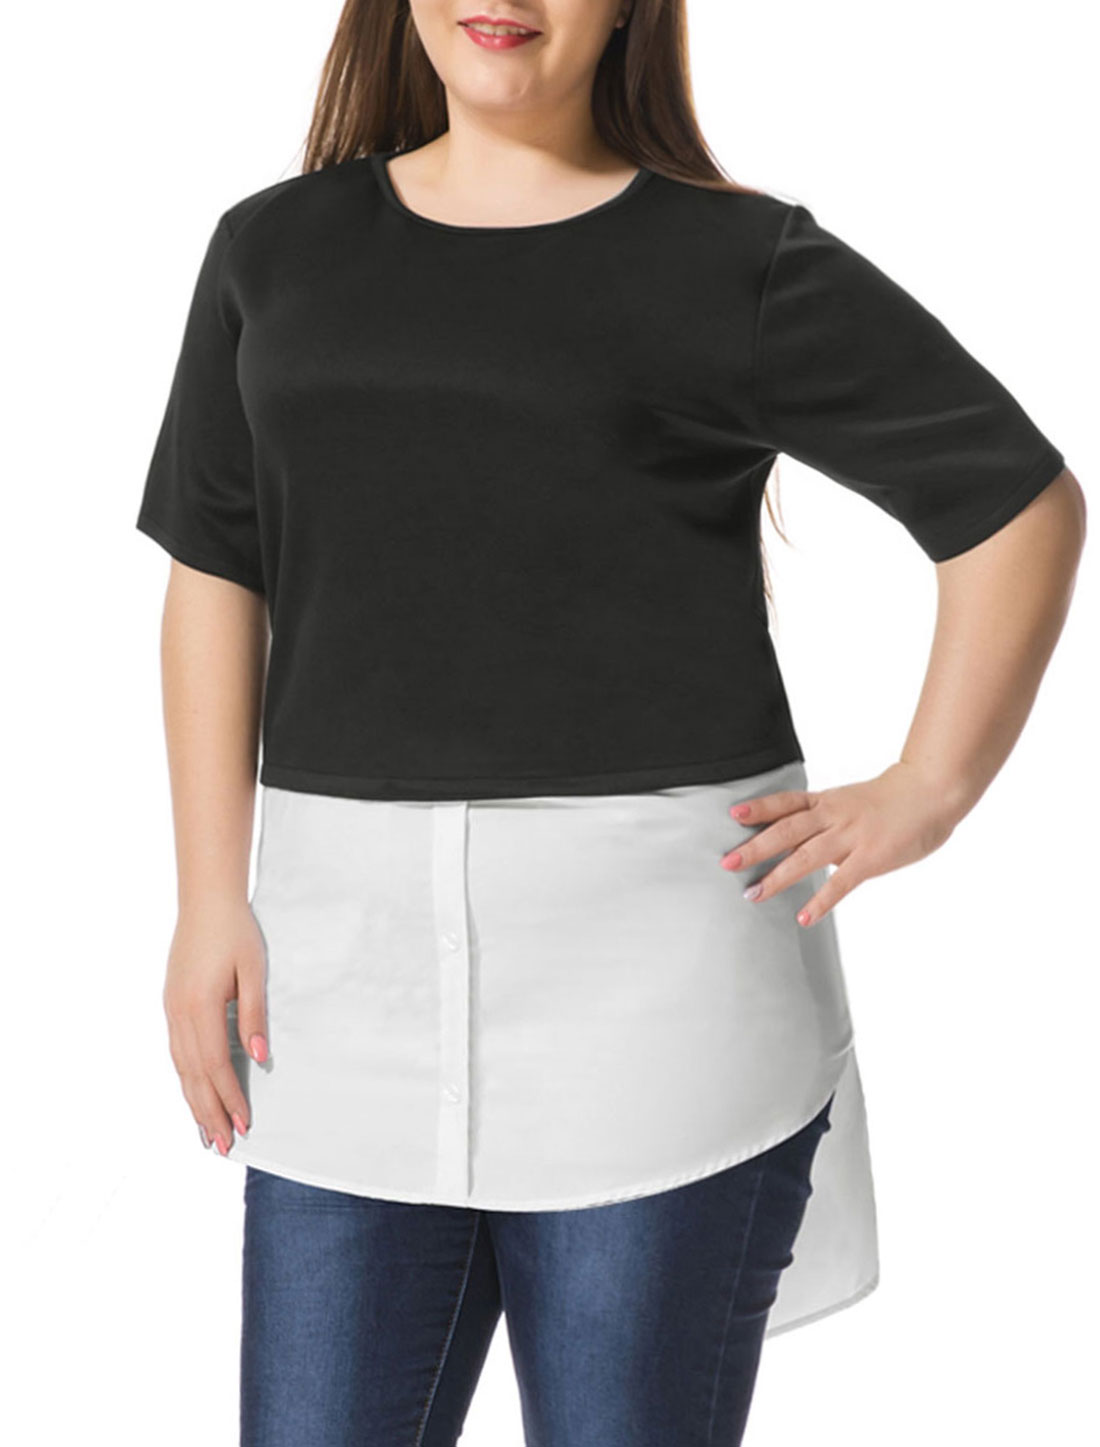 Women Plus Size Contrast-Paneled Shirttail Tunic Top Black White 2X